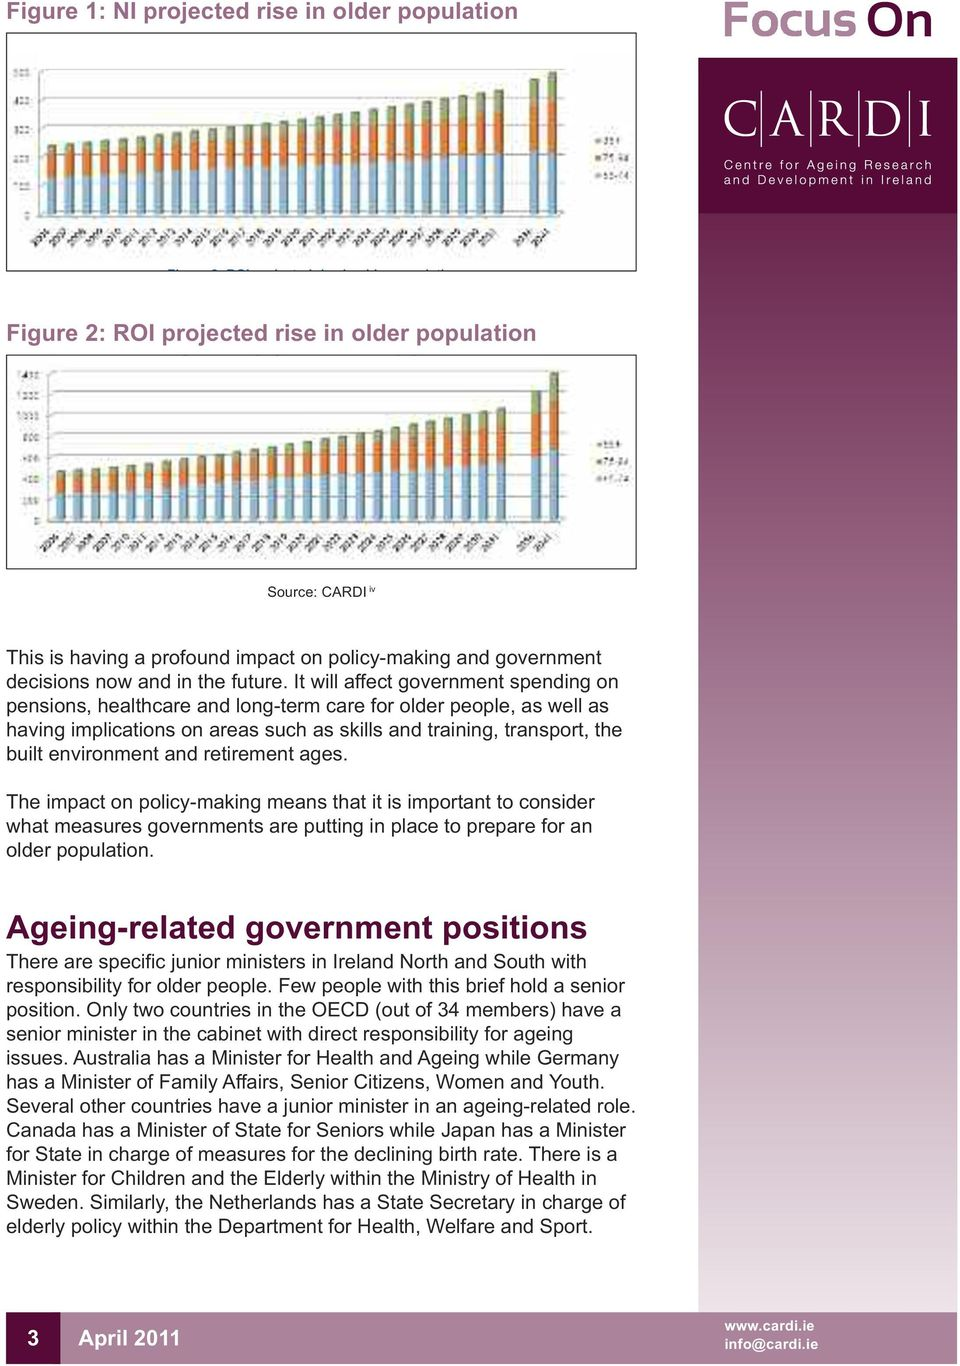 It will affect government spending on pensions, healthcare and long-term care for older people, as well as having implications on areas such as skills and training, transport, the built environment